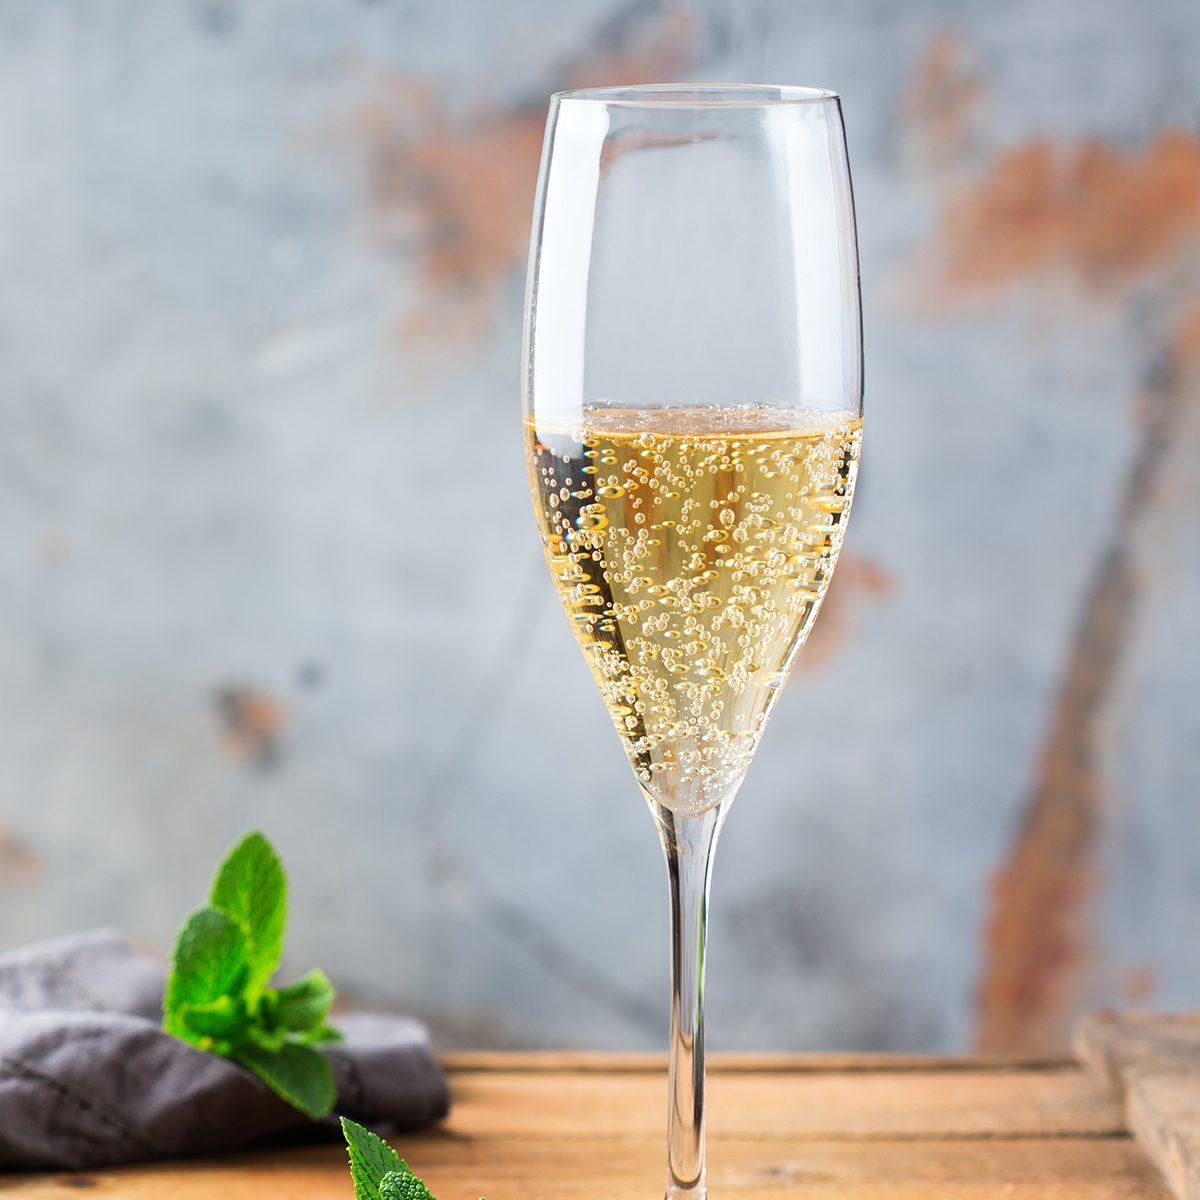 Food and drink, holidays party concept. Cold fresh alcohol beverage champagne sparkling white wine with bubbles in a flute glass on a wooden table. Copy space background; Shutterstock ID 1086809027; Job (TFH, TOH, RD, BNB, CWM, CM): TOH